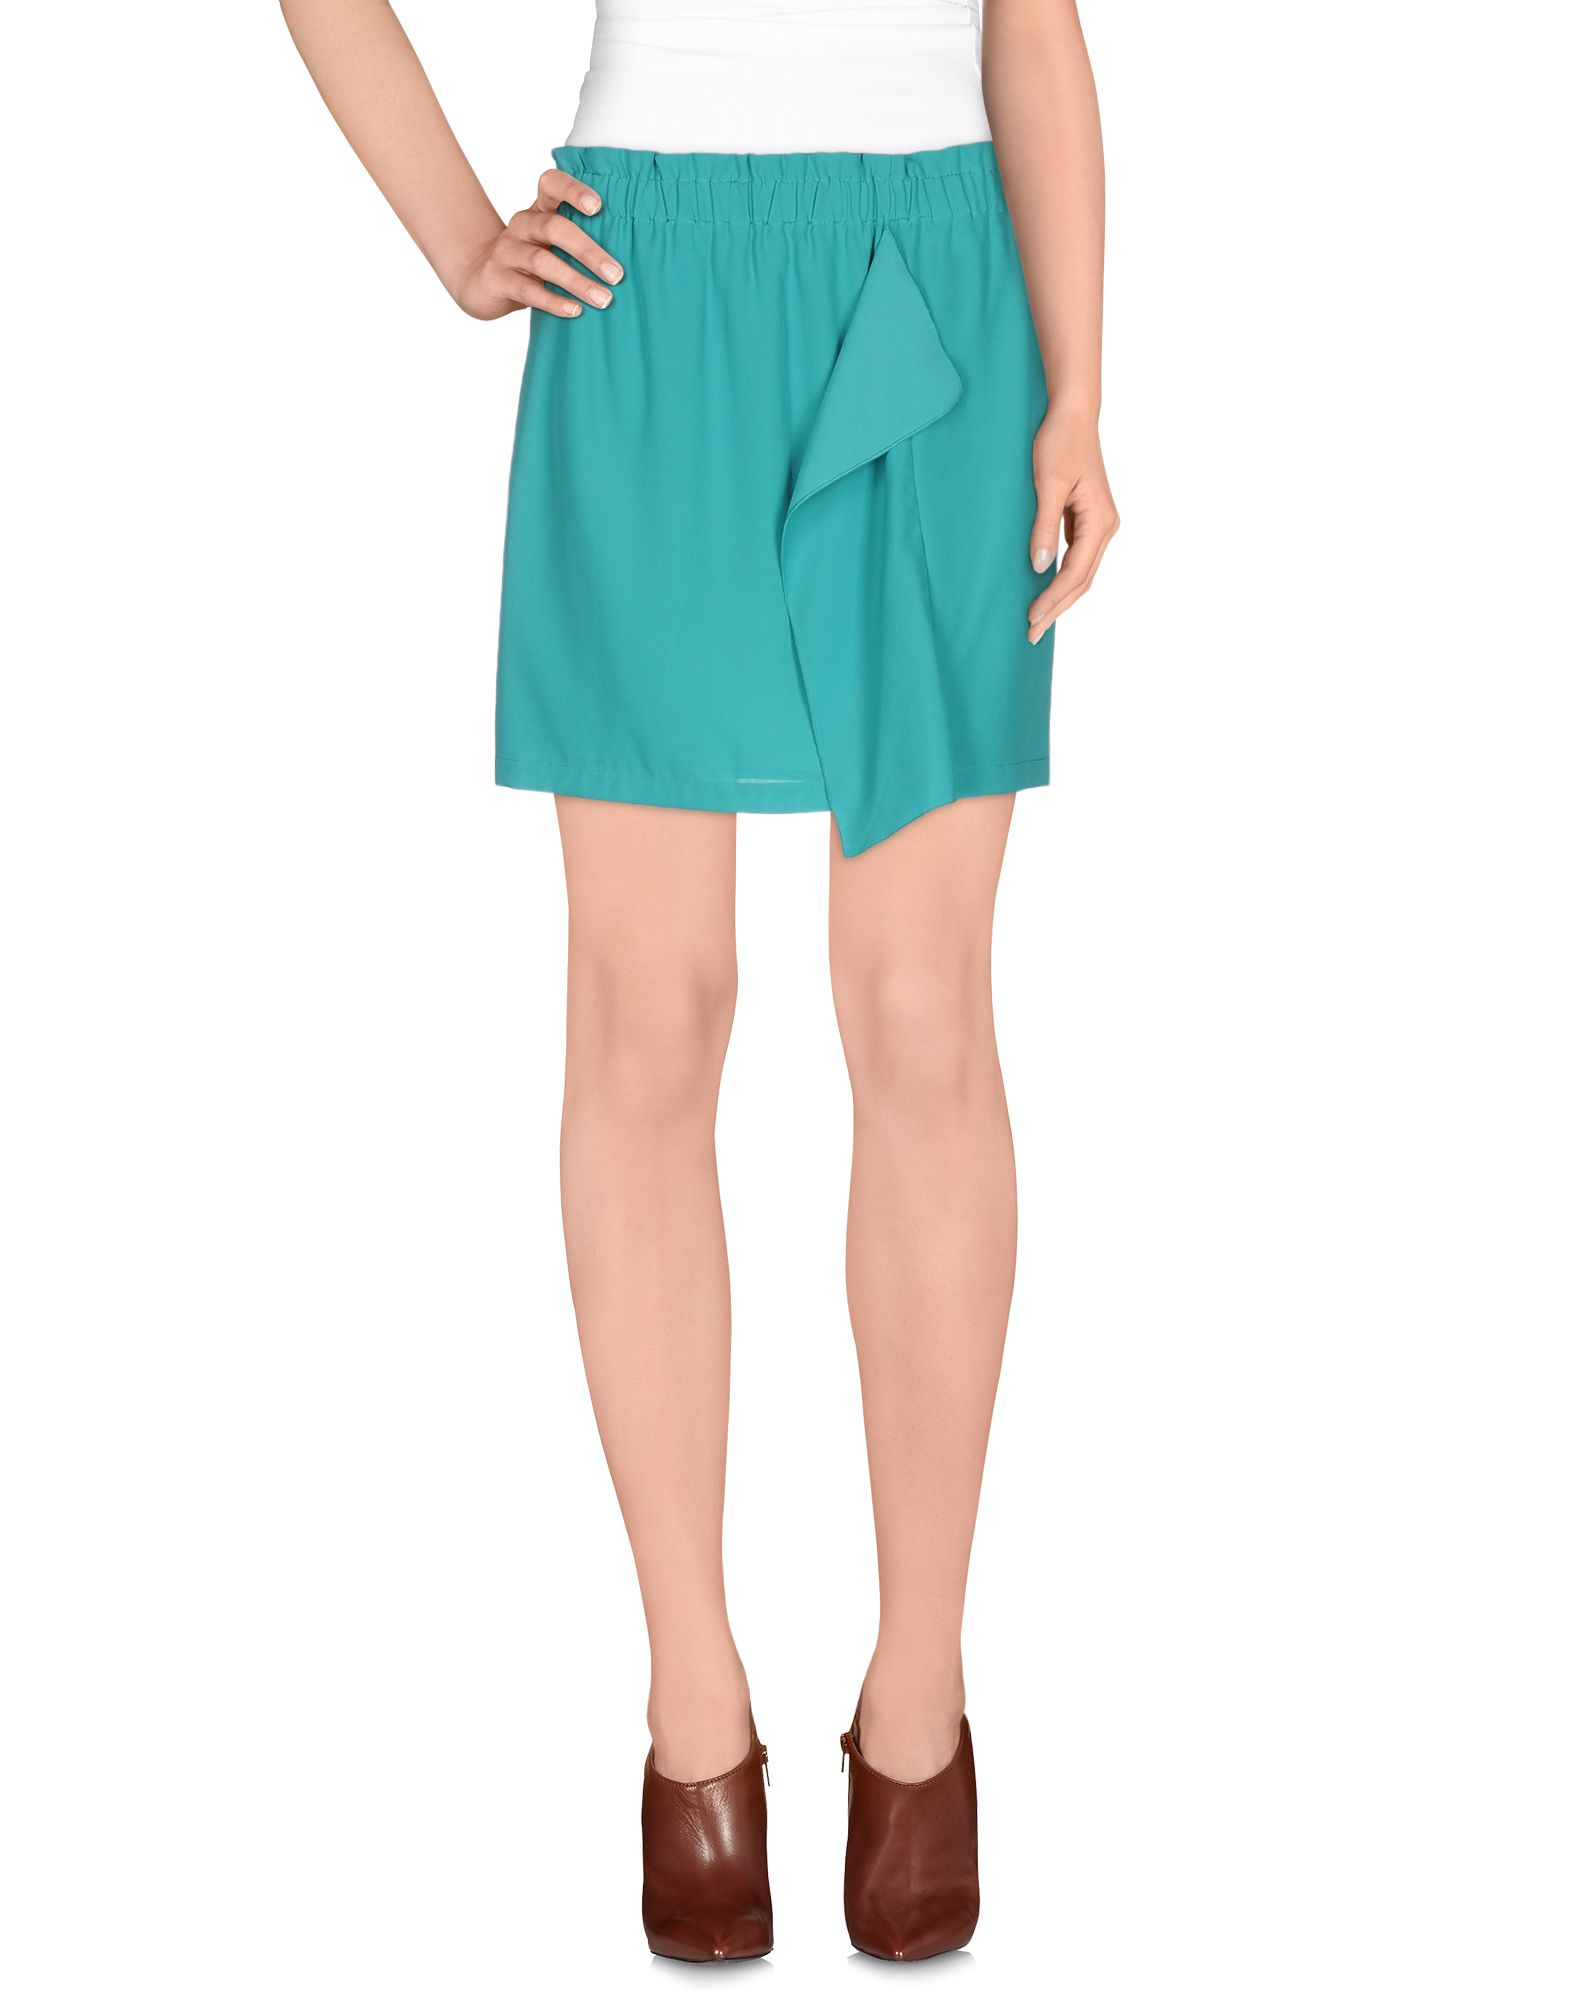 pinko mini skirt in blue turquoise lyst